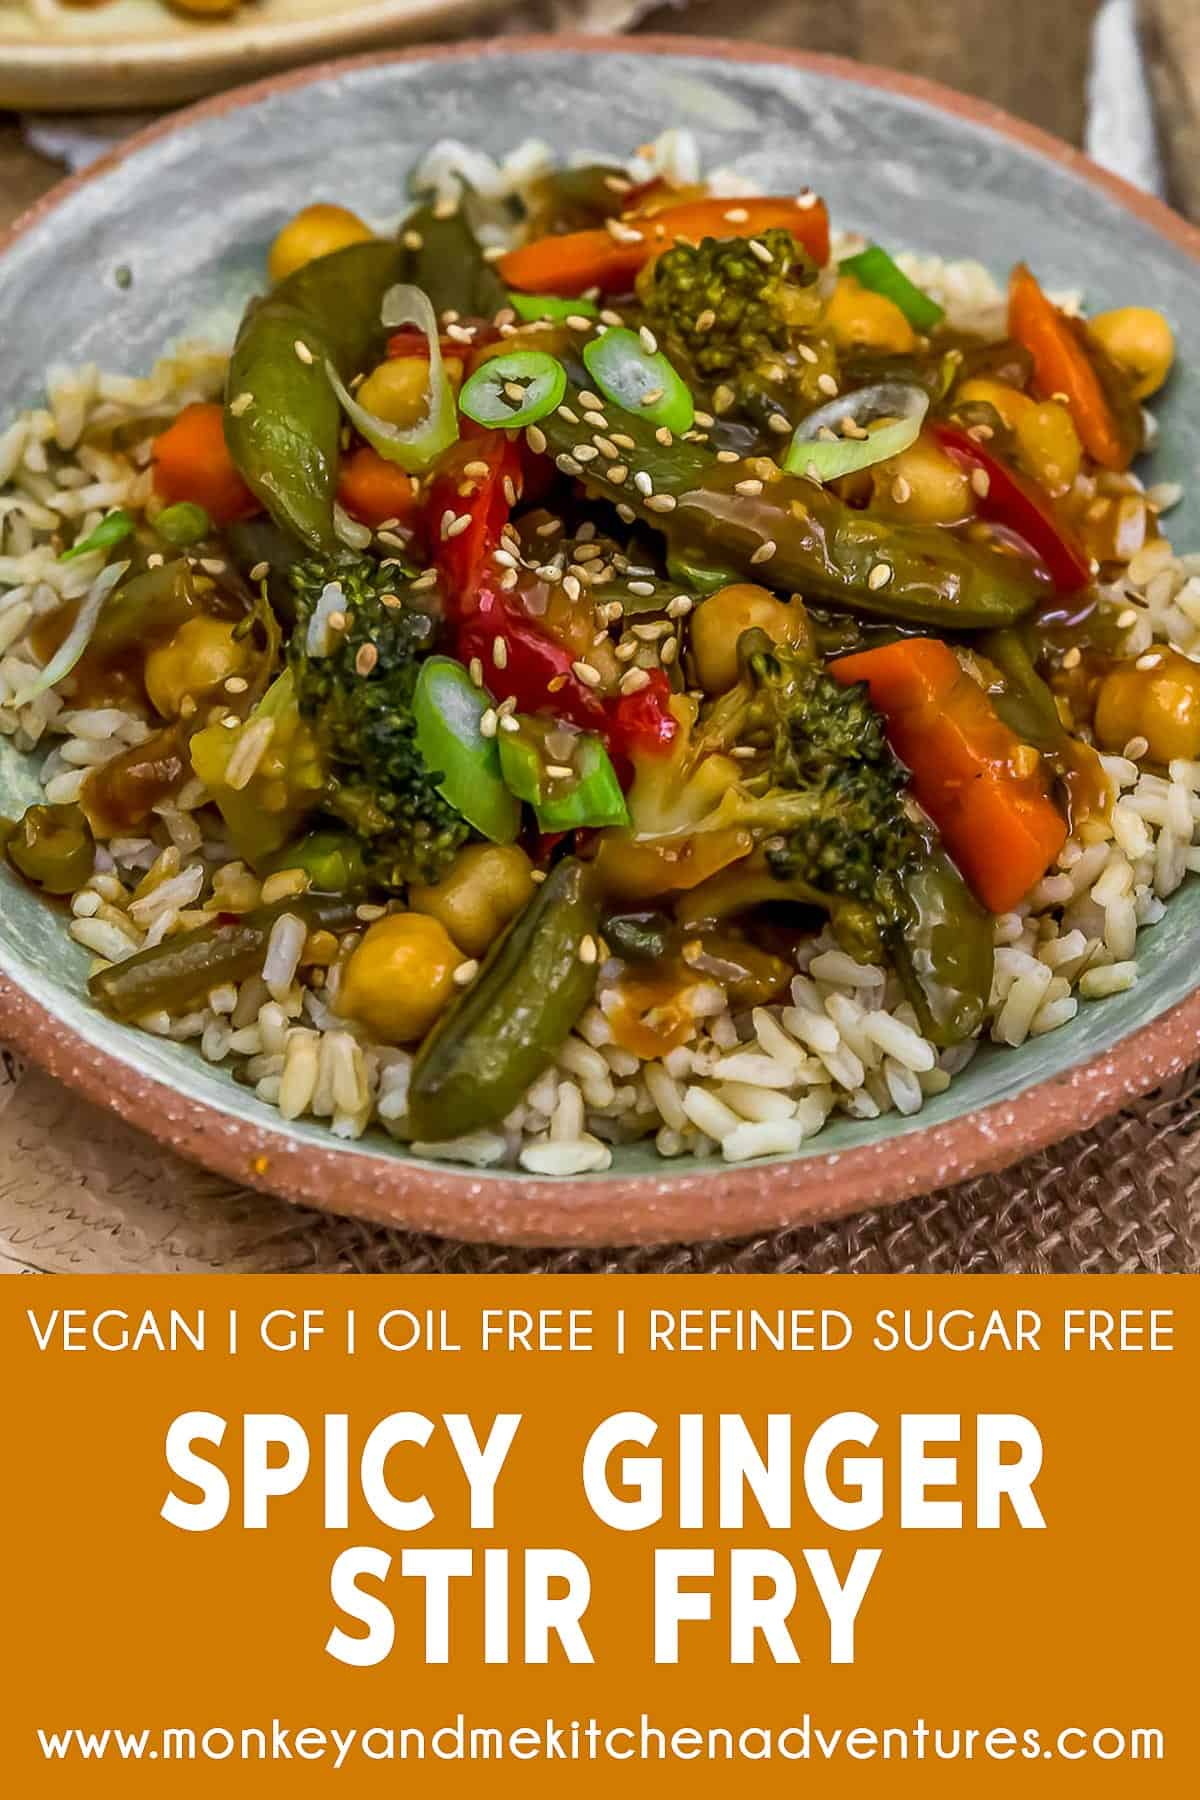 Spicy Ginger Stir Fry with Text Description